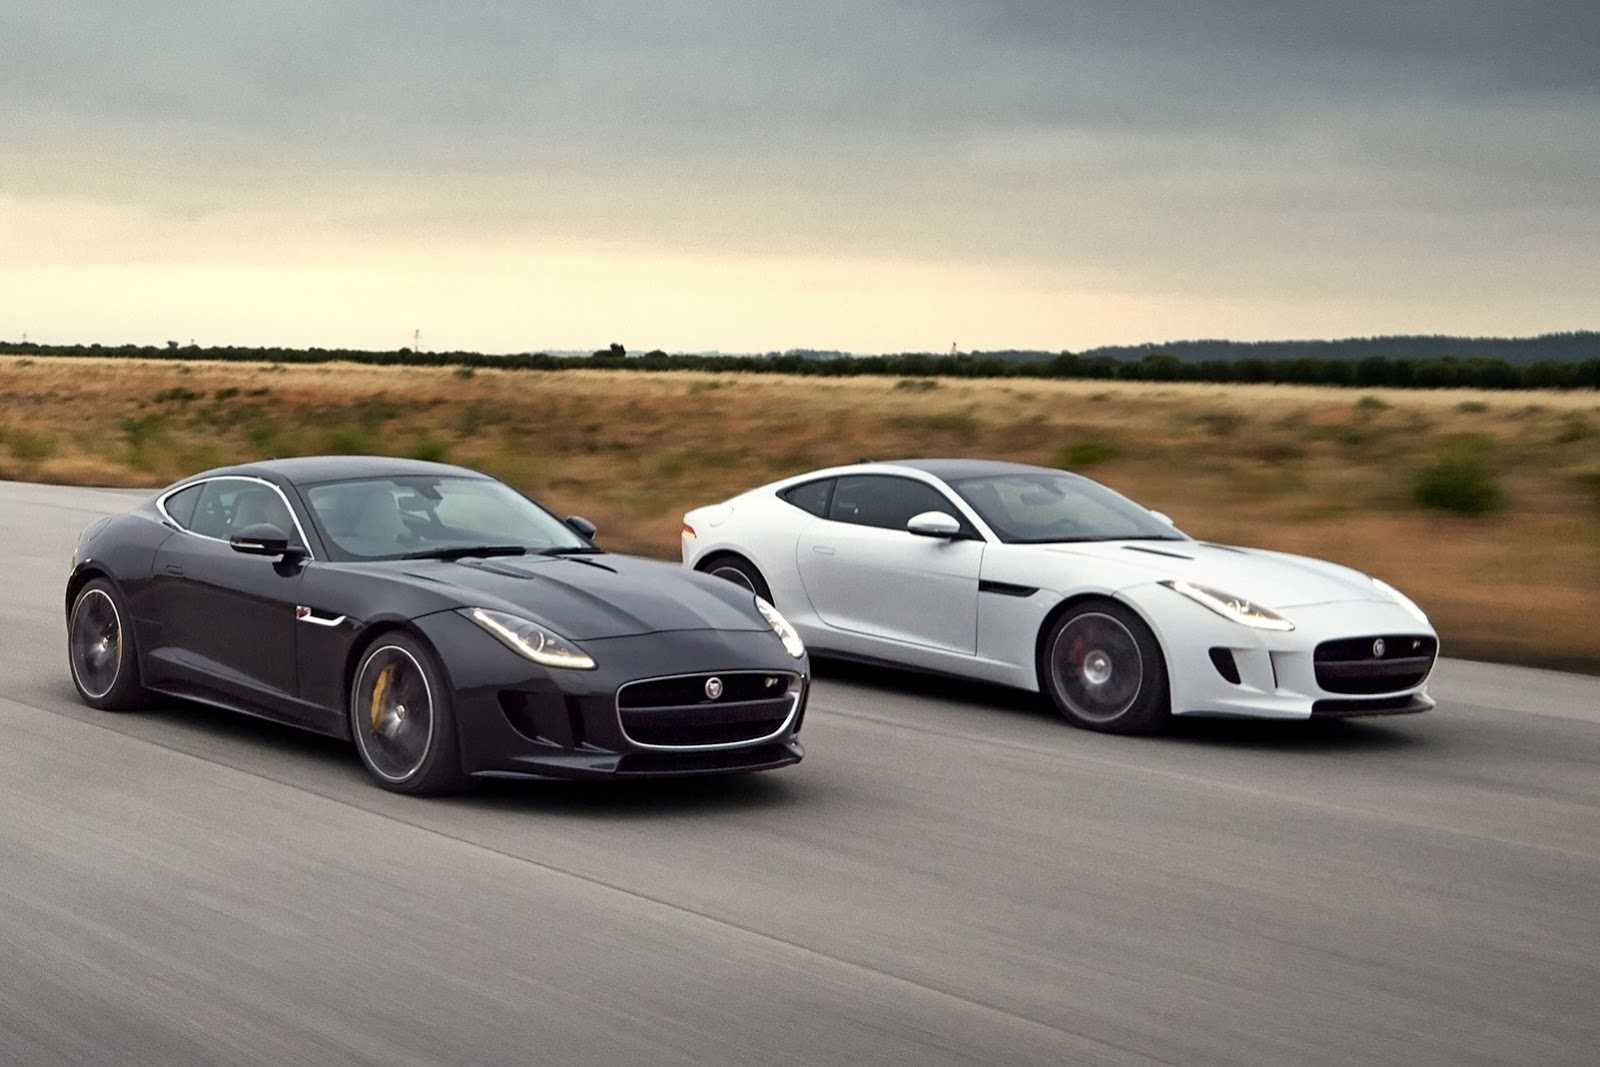 2017 jaguar f type coupe a 200 mph car to push. Black Bedroom Furniture Sets. Home Design Ideas